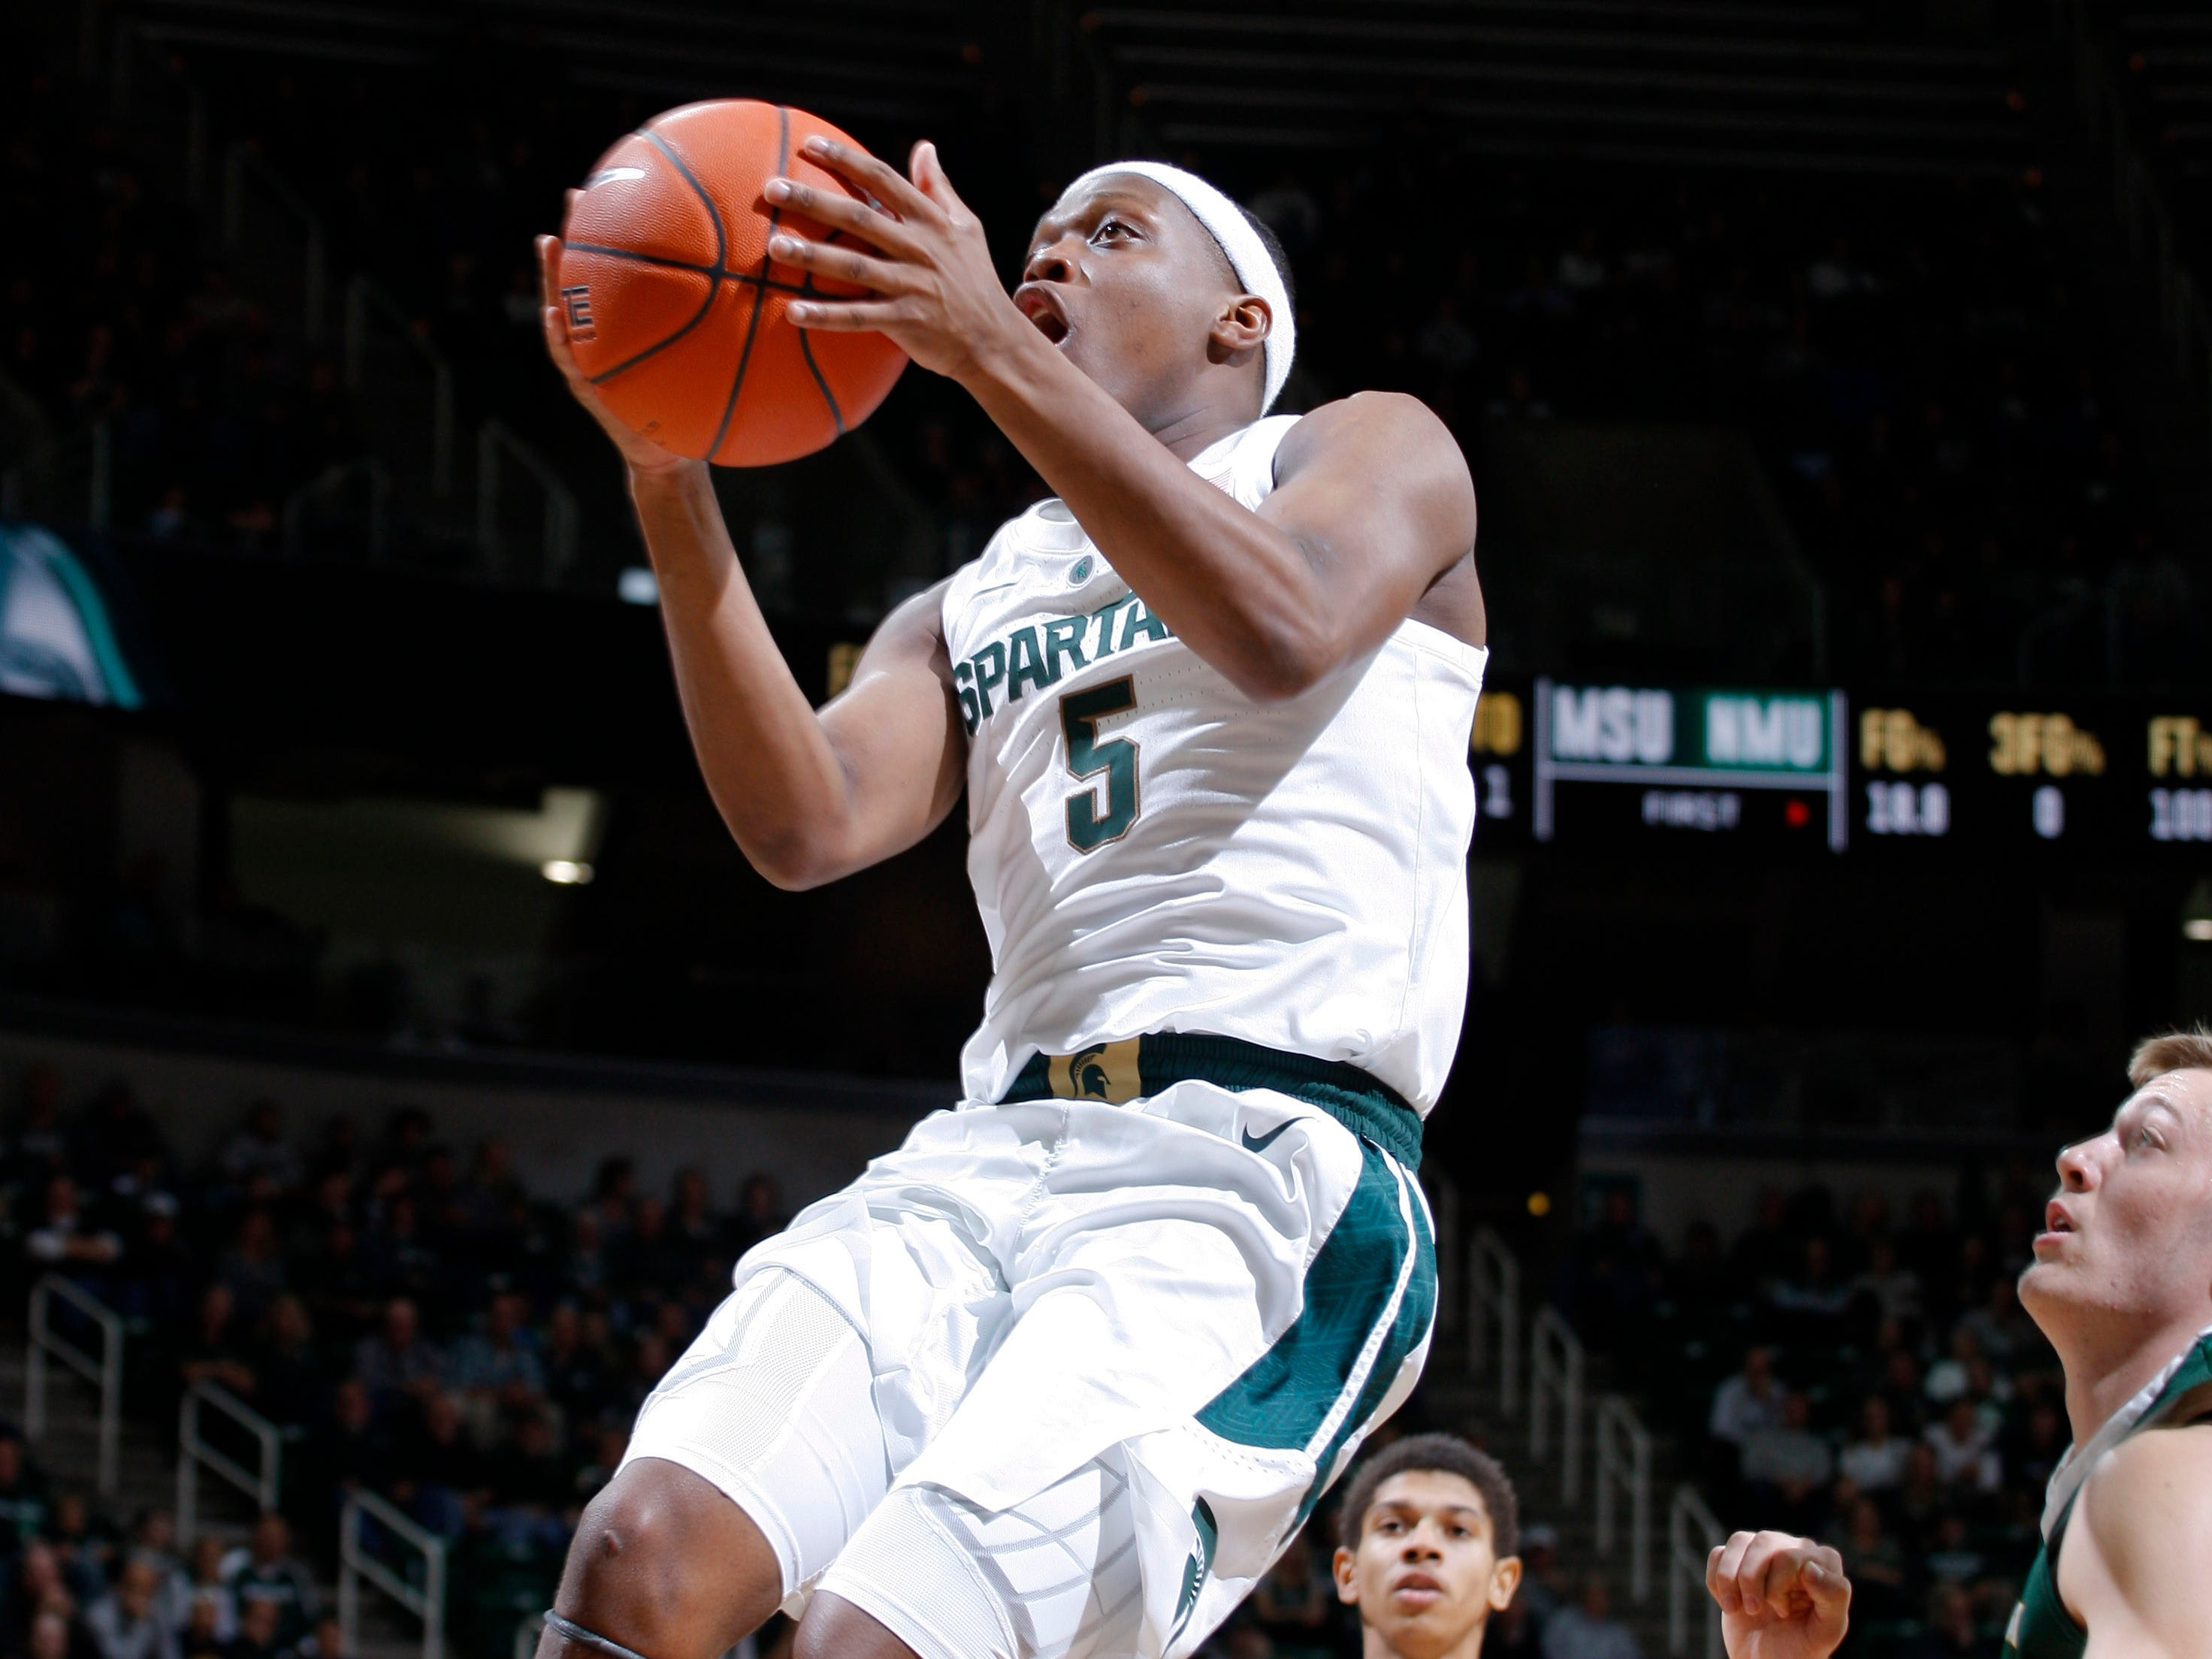 Michigan State's Cassius Winston (5) goes up for a layup against Northern Michigan, Tuesday, Oct. 30, 2018, in East Lansing, Mich.